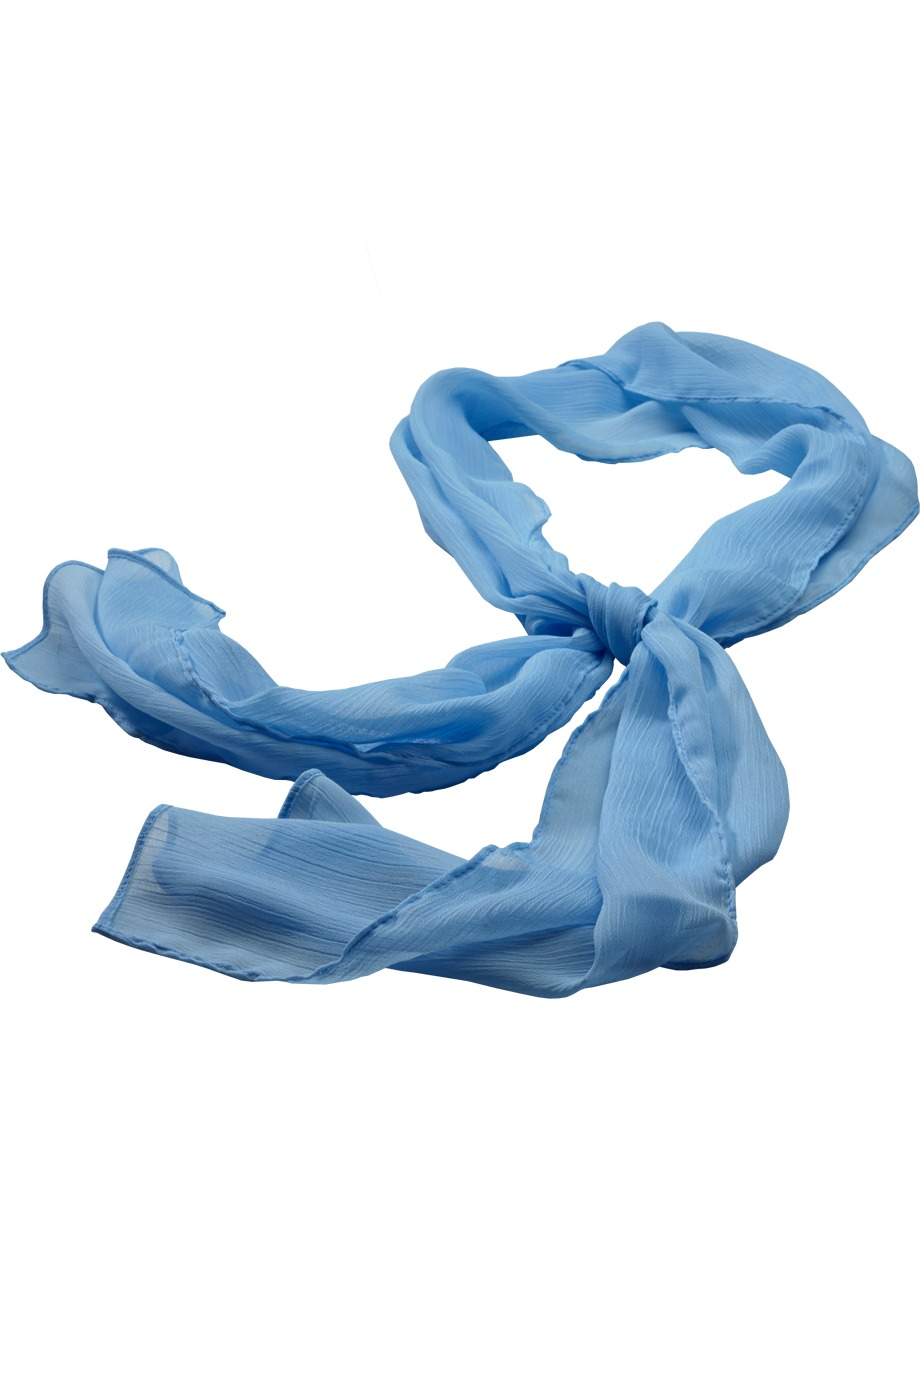 Edwards Garment SC56 - Ladies Solid Chiffon Scarf